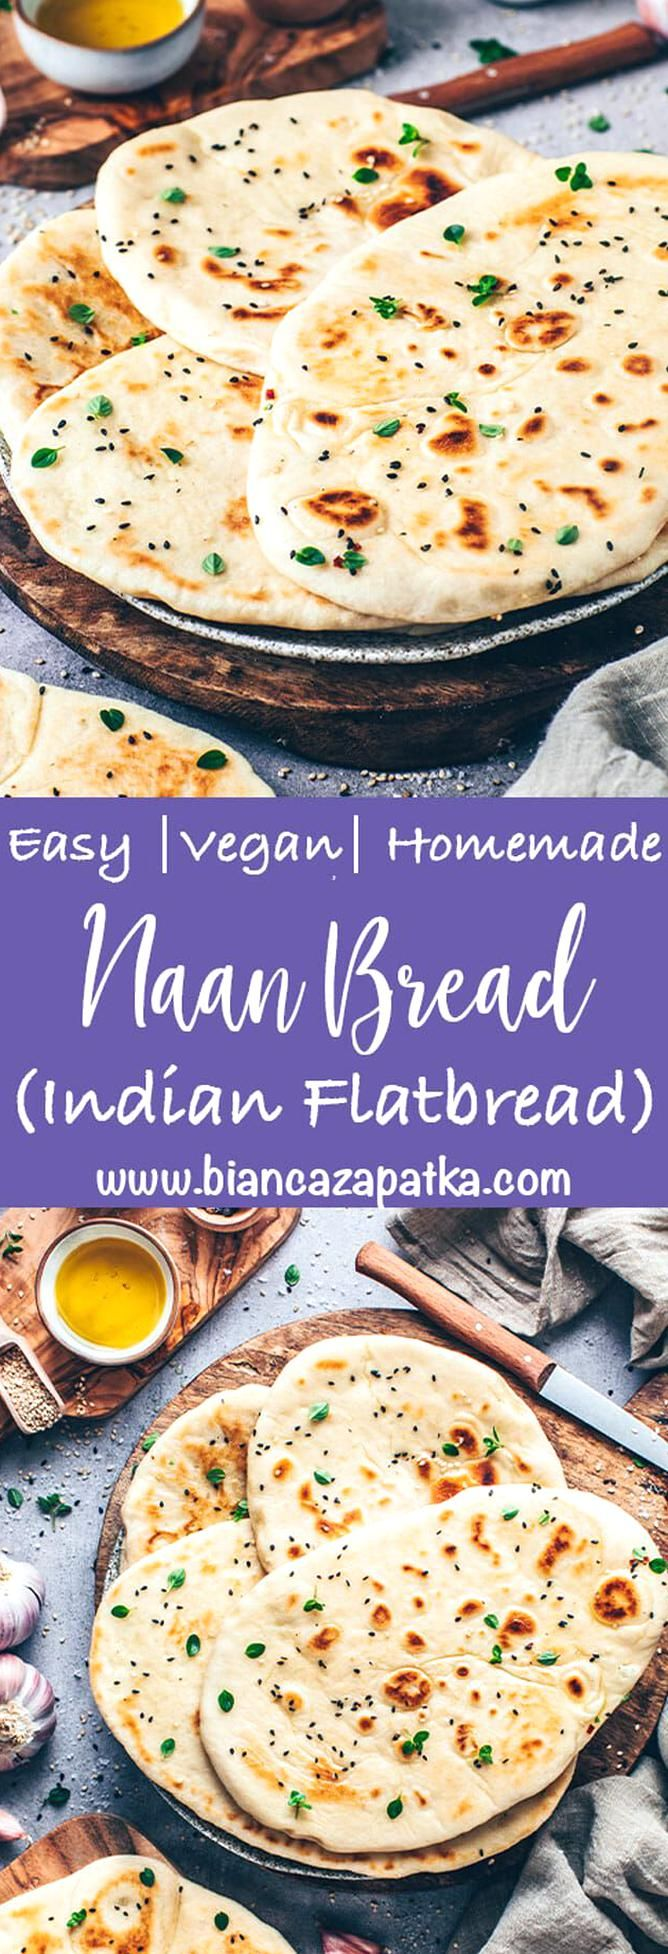 pin by susan amani on quality pins in 2020 naan bread homemade naan bread easy meals pinterest